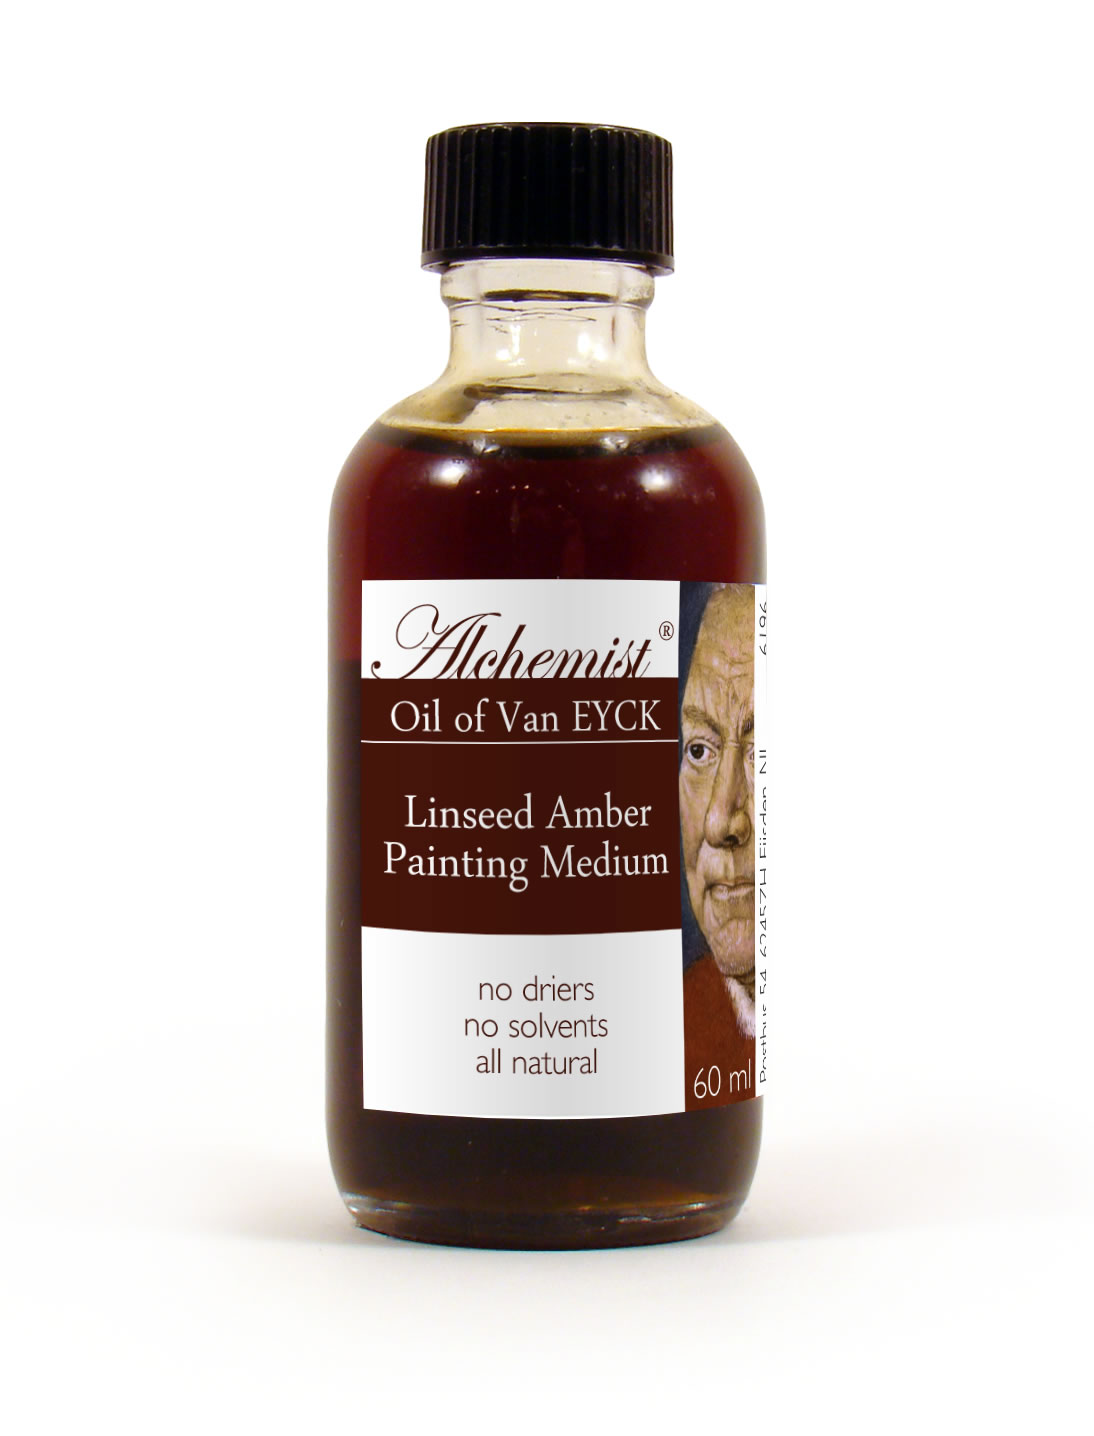 Oil of Van Eyck Linseed Amber Painting Medium